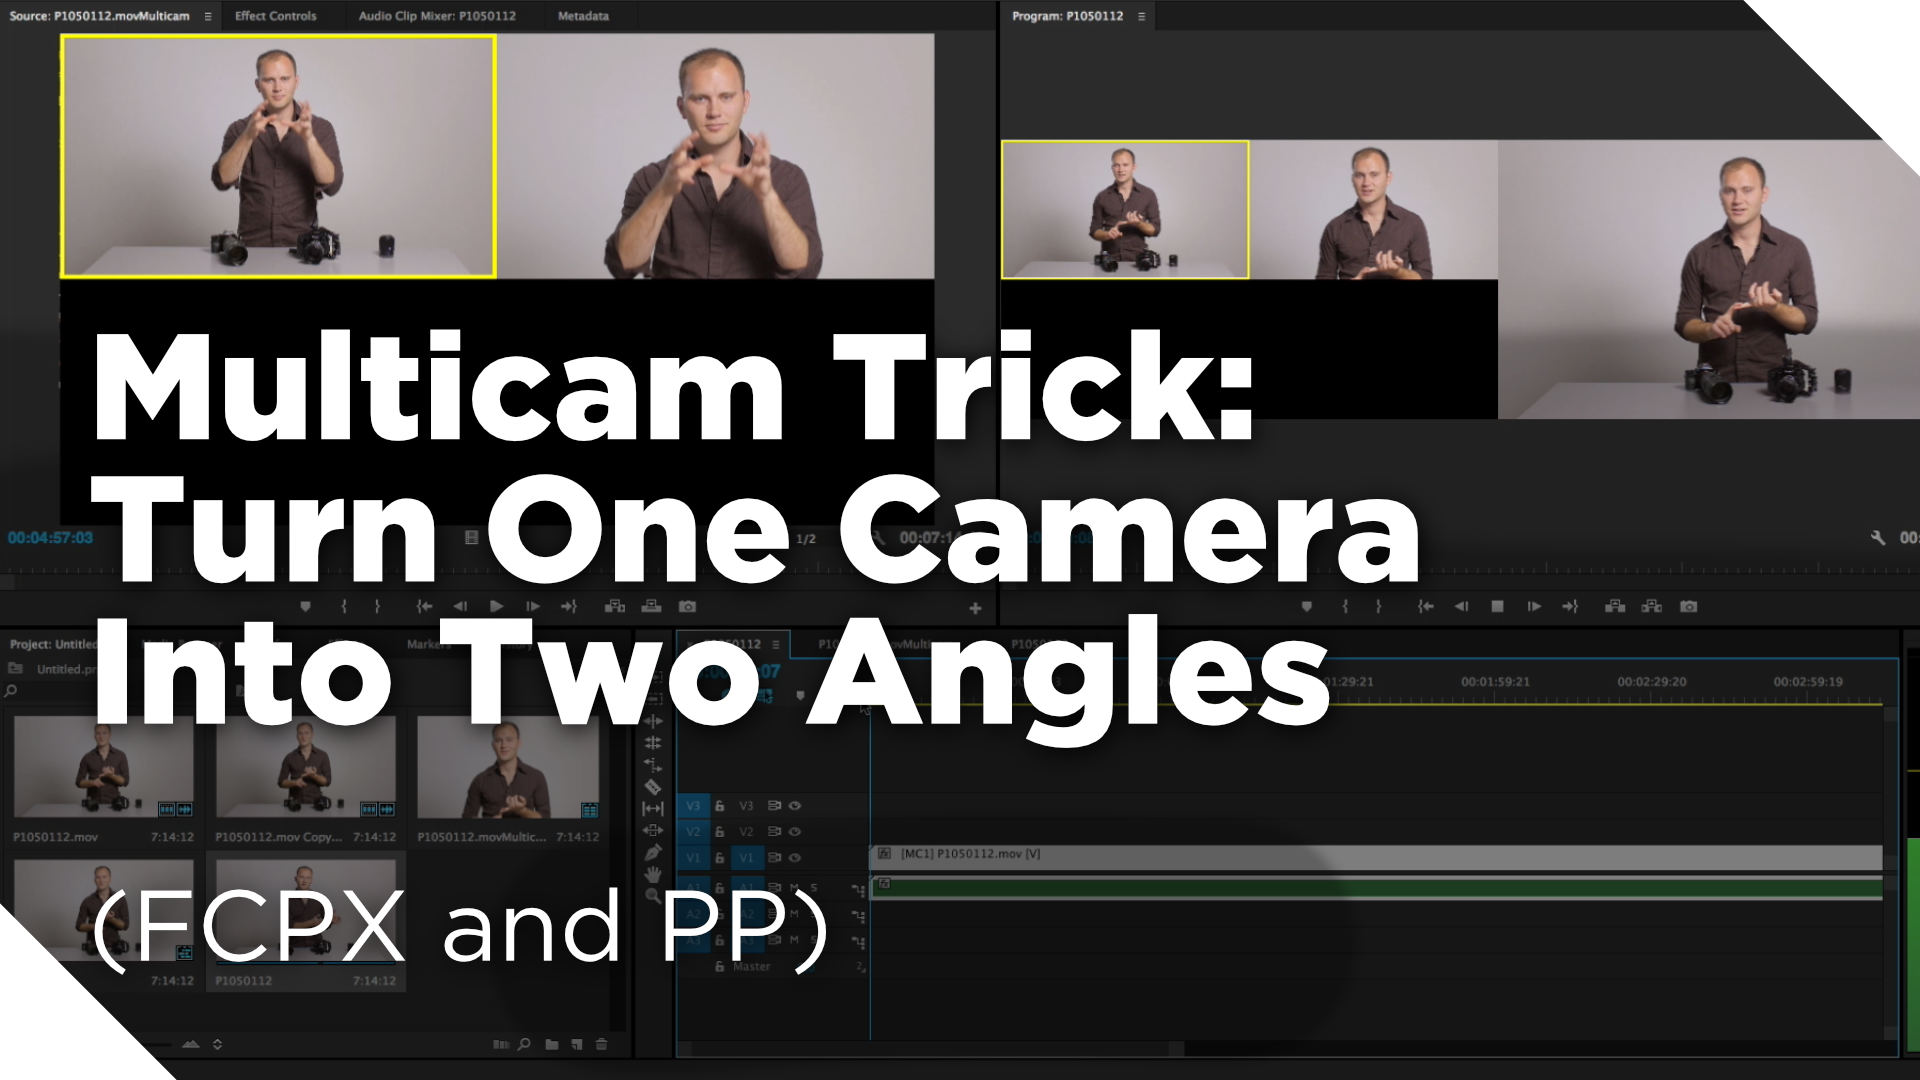 Multicam Trick: How to Turn One Camera Into Two Angles